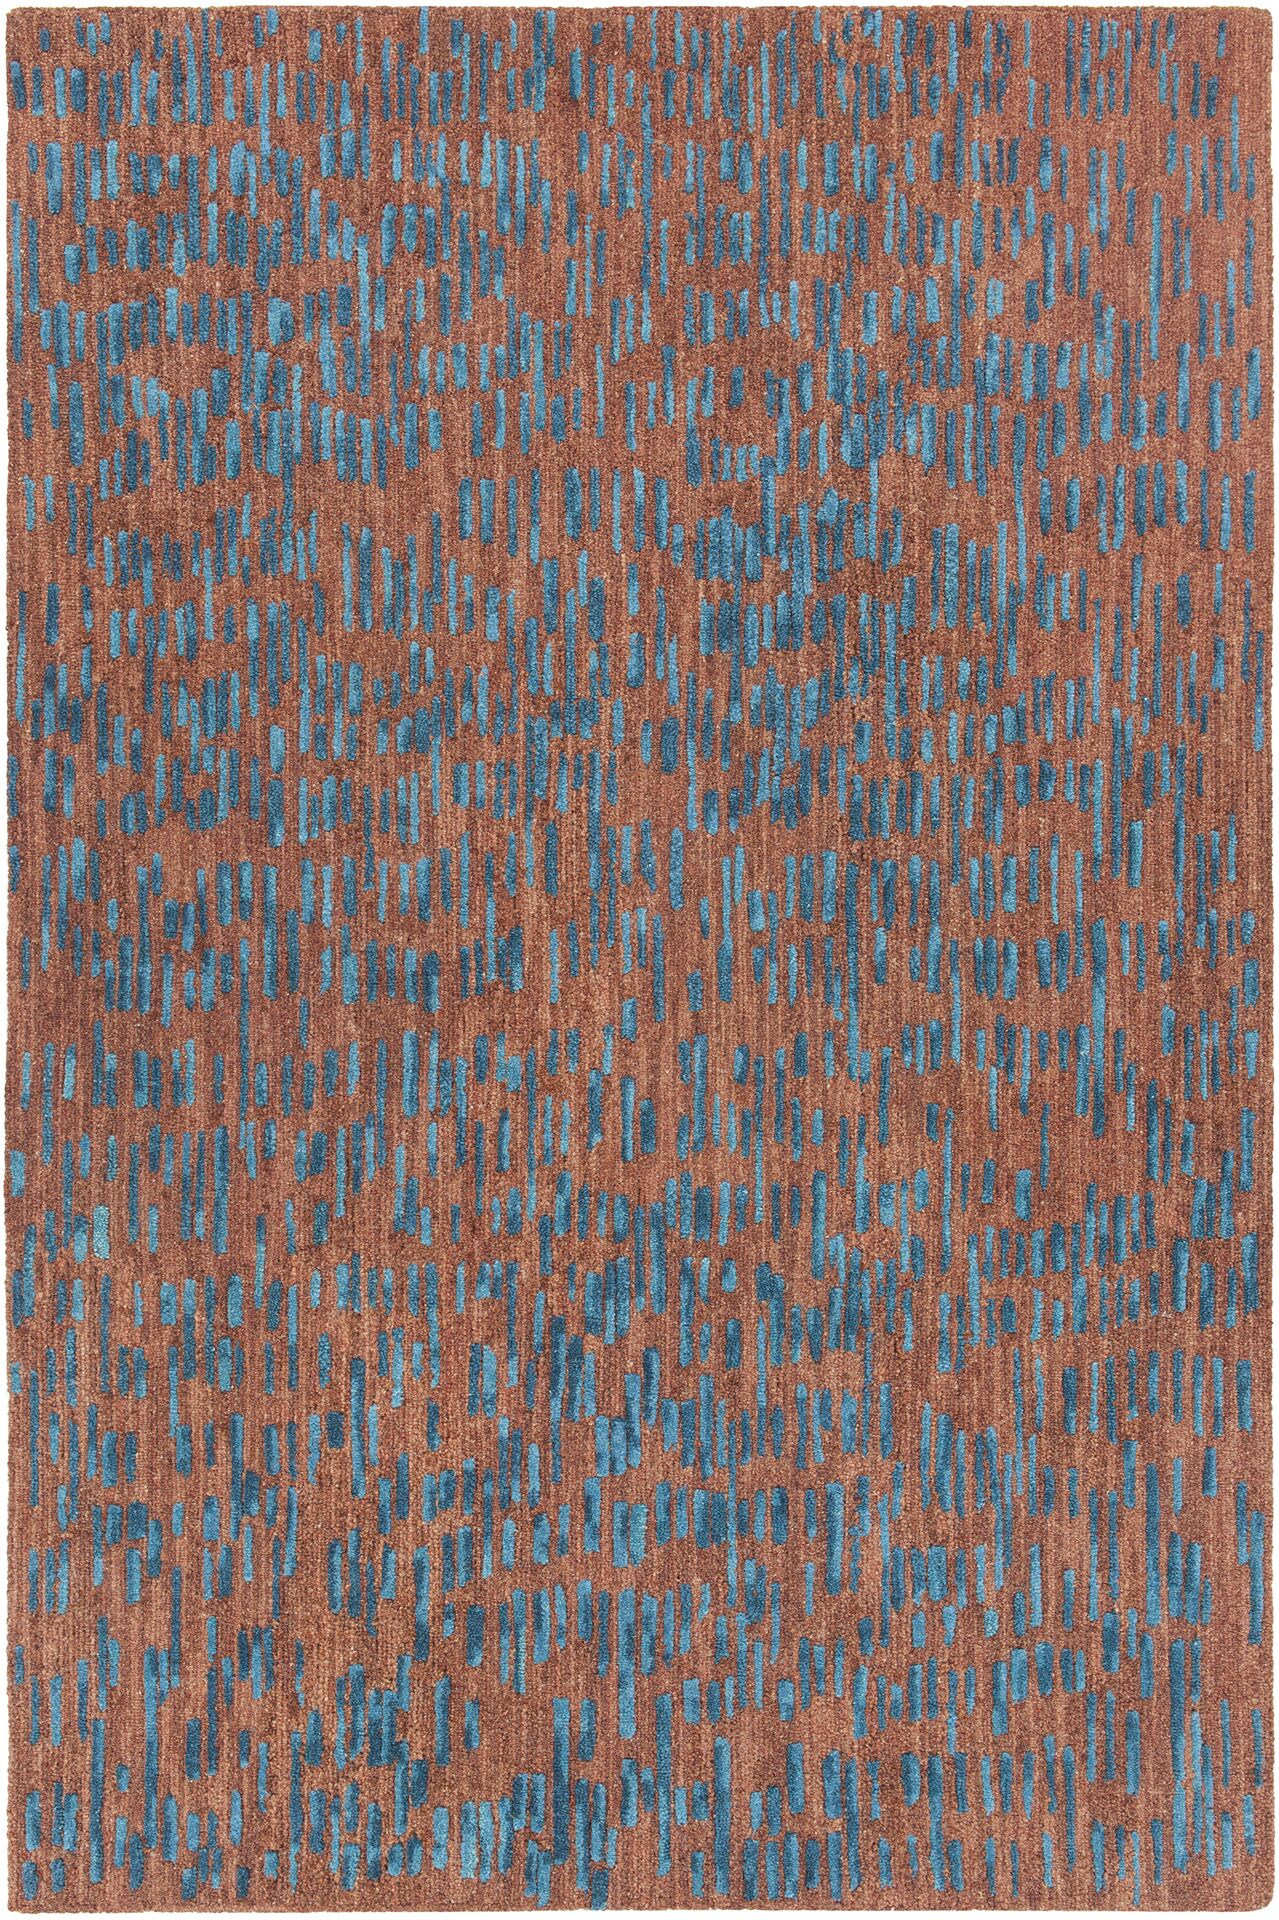 Kirtley Hand-Tufted Brown/Blue Area Rug Rug Size: 7'9